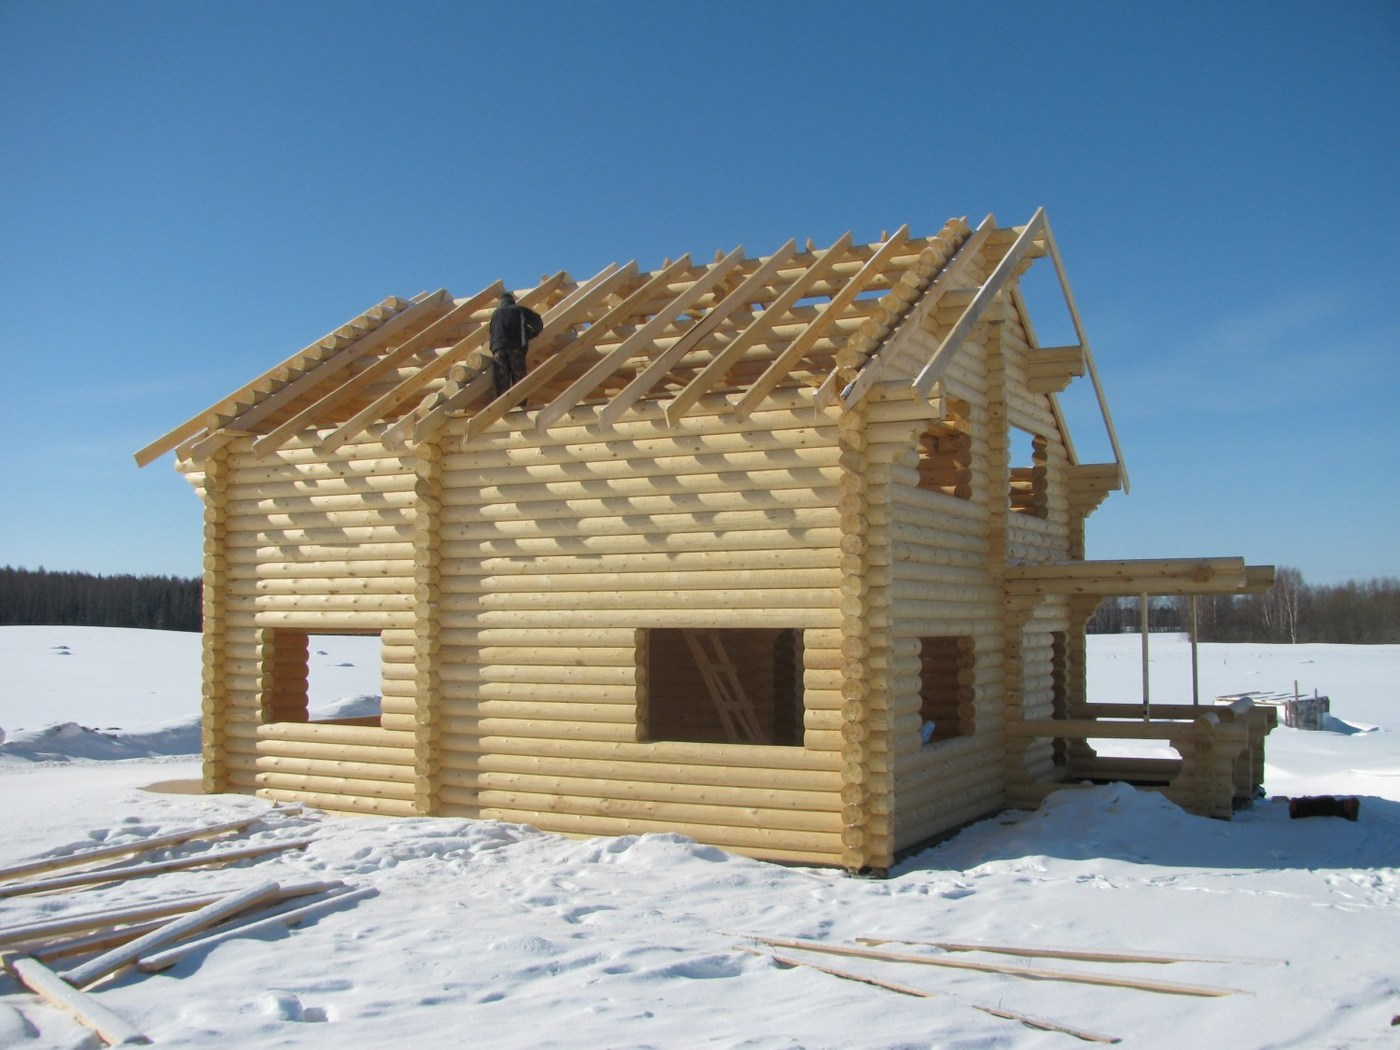 Wooden houses constructions from winter timber